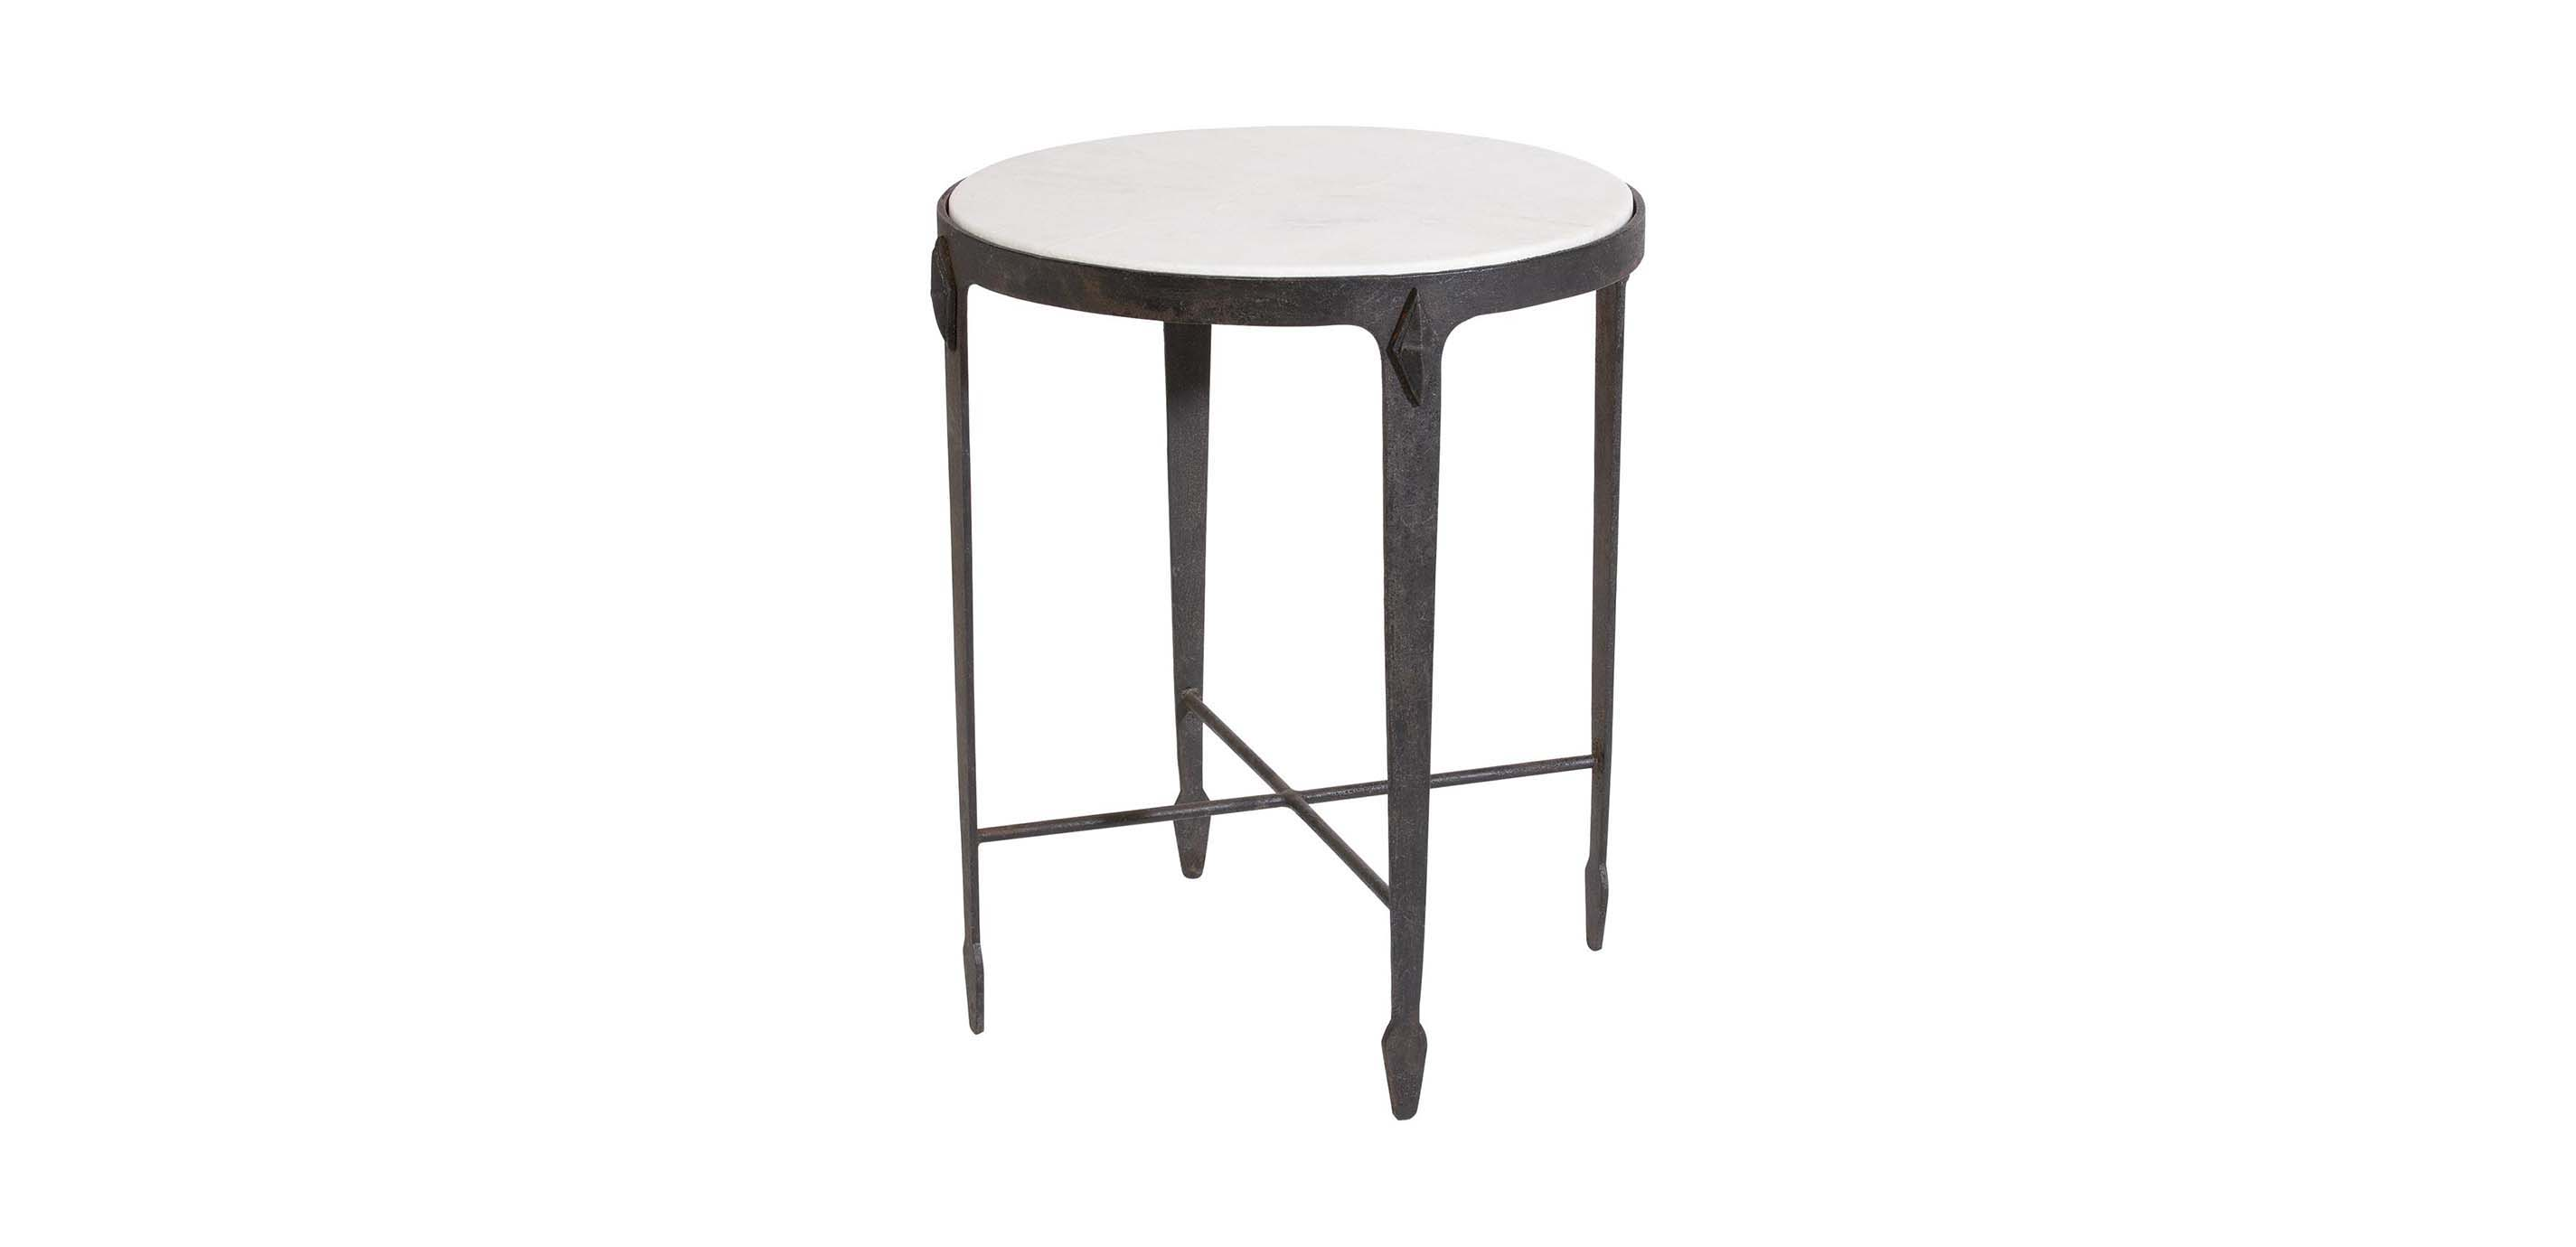 of furniture products round star half moon design ideas with office tables metal accent table